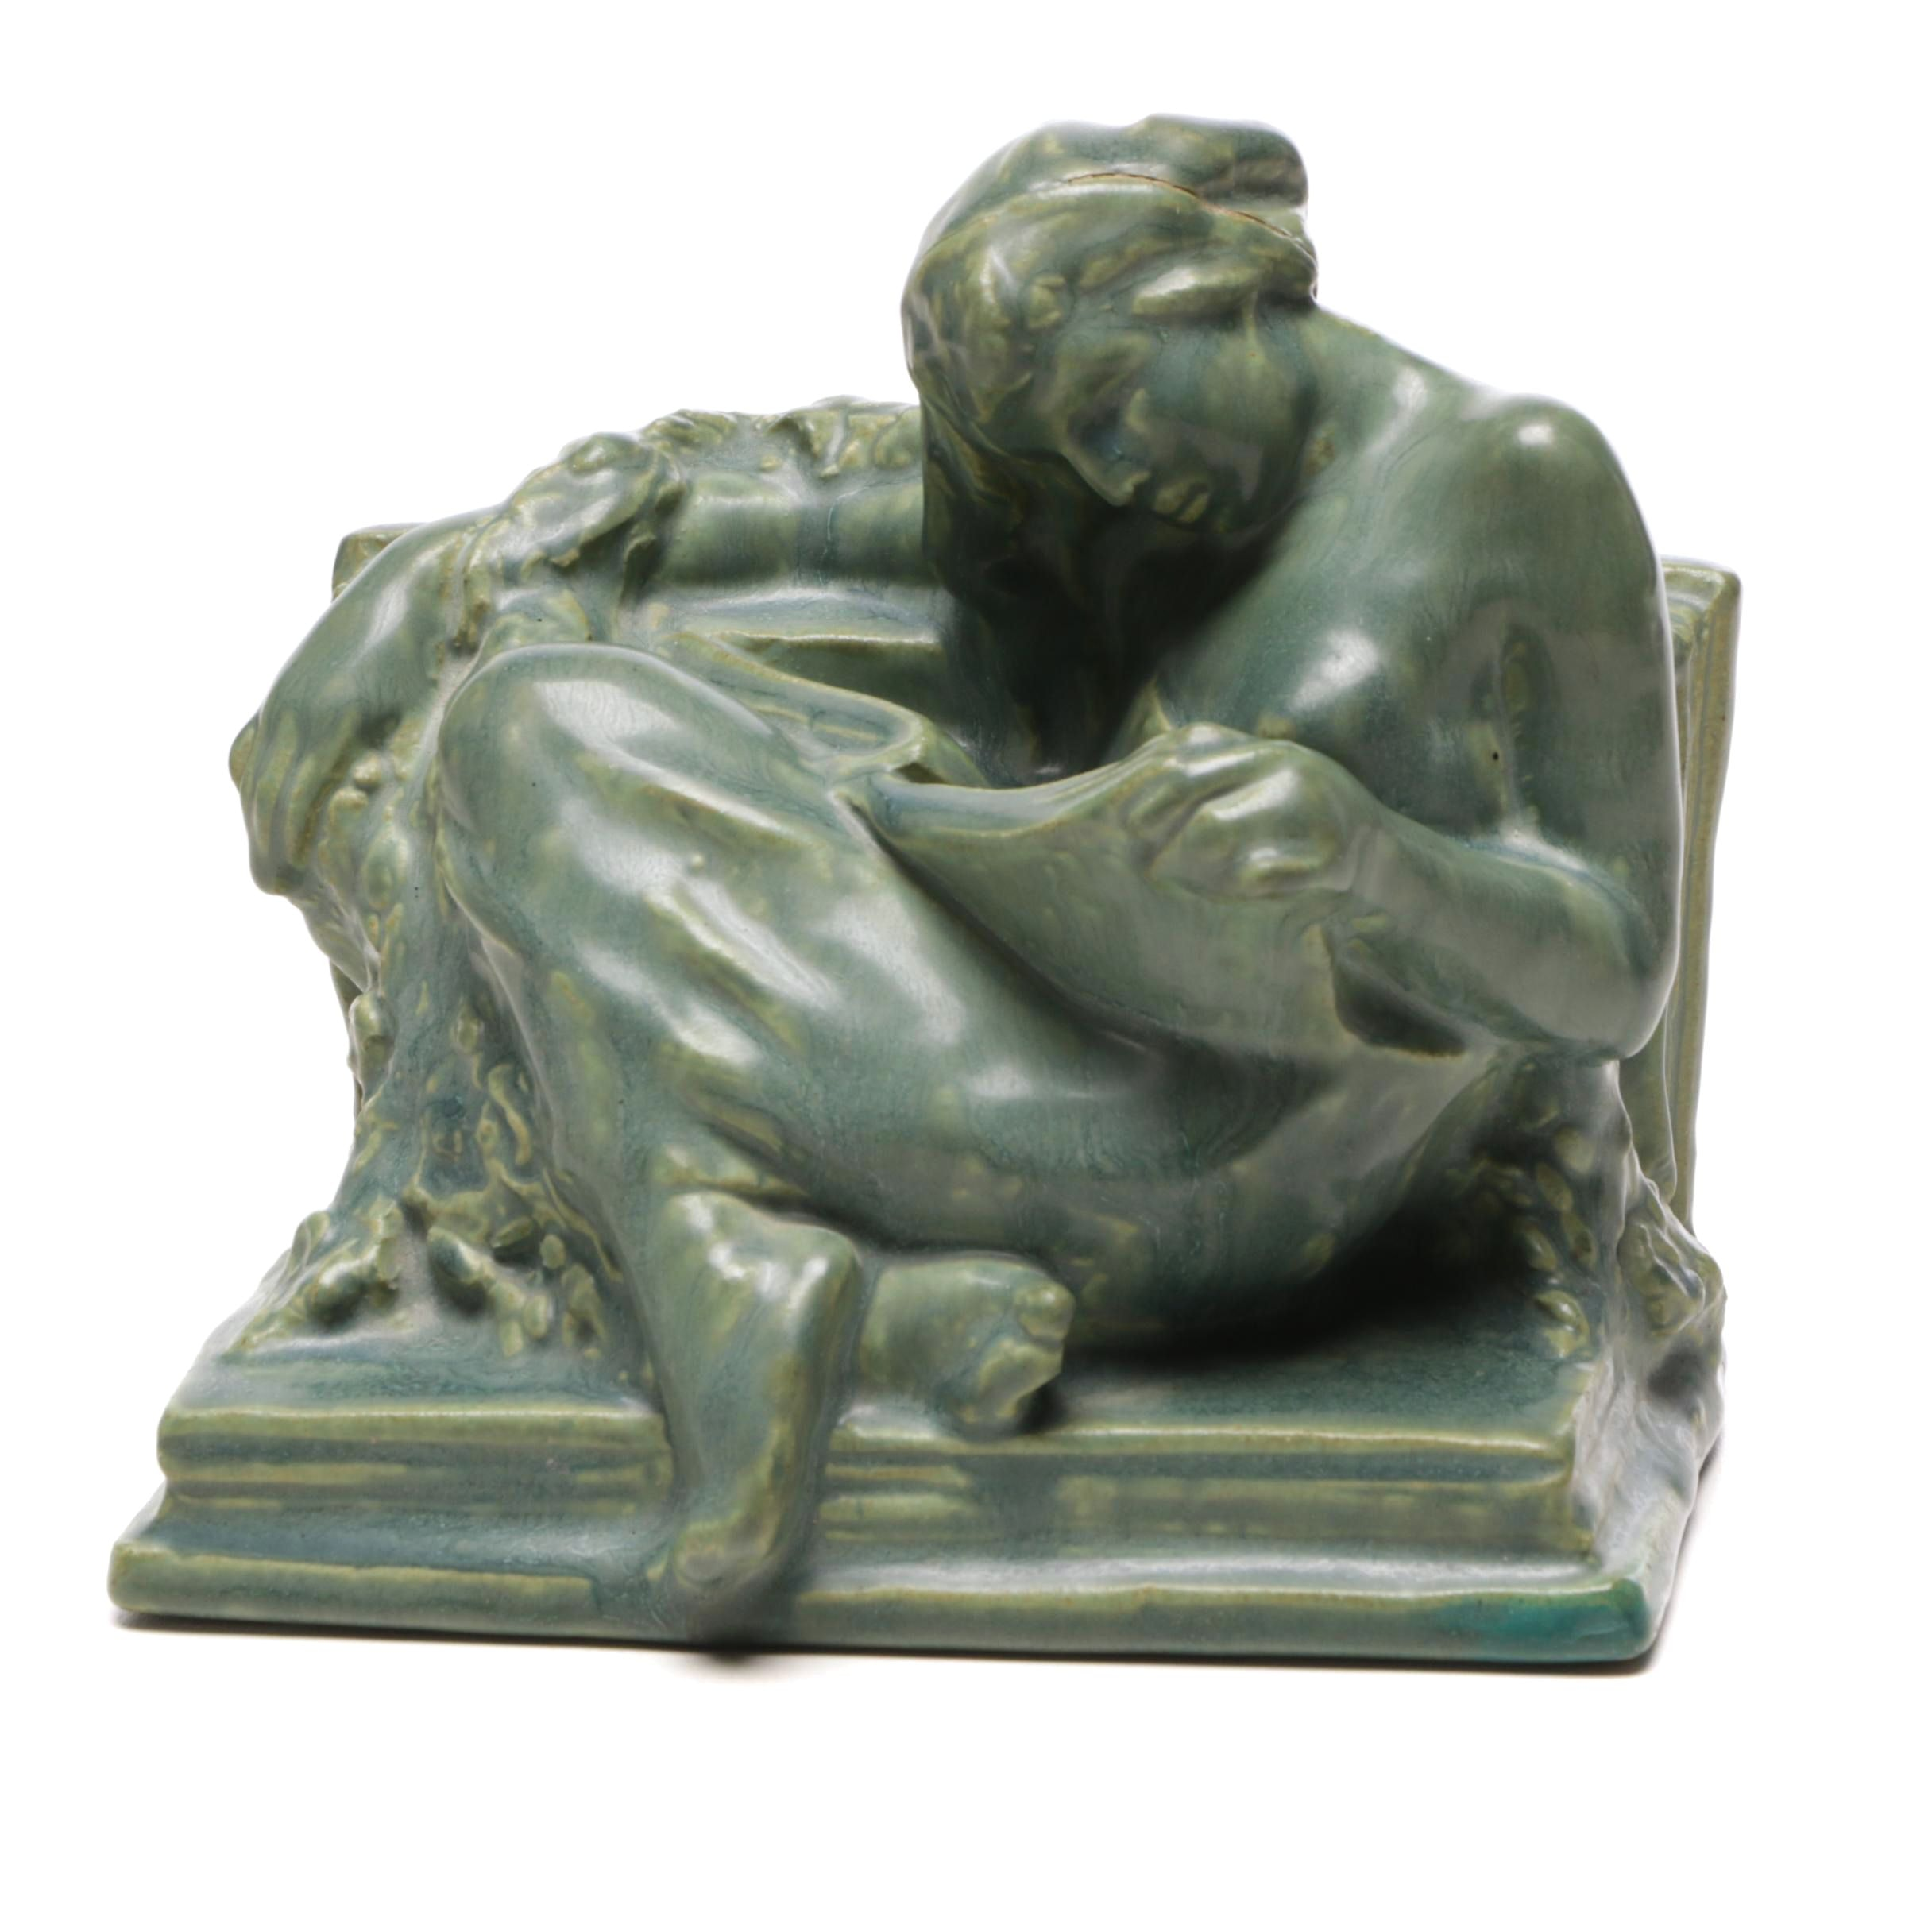 Rookwood Pottery Reclining Nude Bookend, 1915